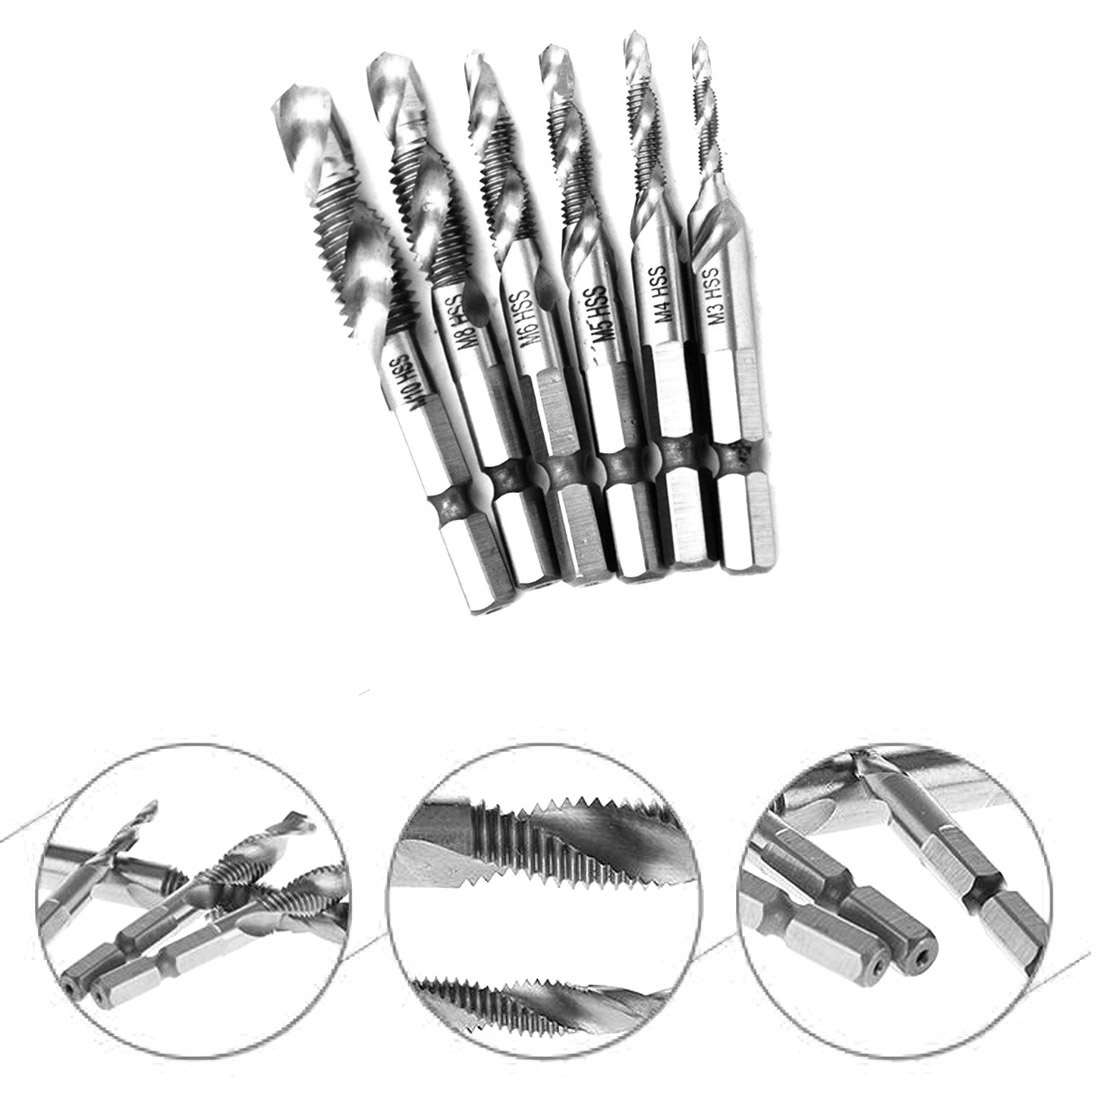 Hot 6pcs/set Hand Tap Drill Hex Shank HSS Screw Spiral Point Thread Metric Plug Drill Bits M3 M4 M5 M6 M8 M10 Hand Tools 5pcs hand screw tap screw thread m3 m4 m5 m6 m8 thread tool metric plug tap set drill set tap die